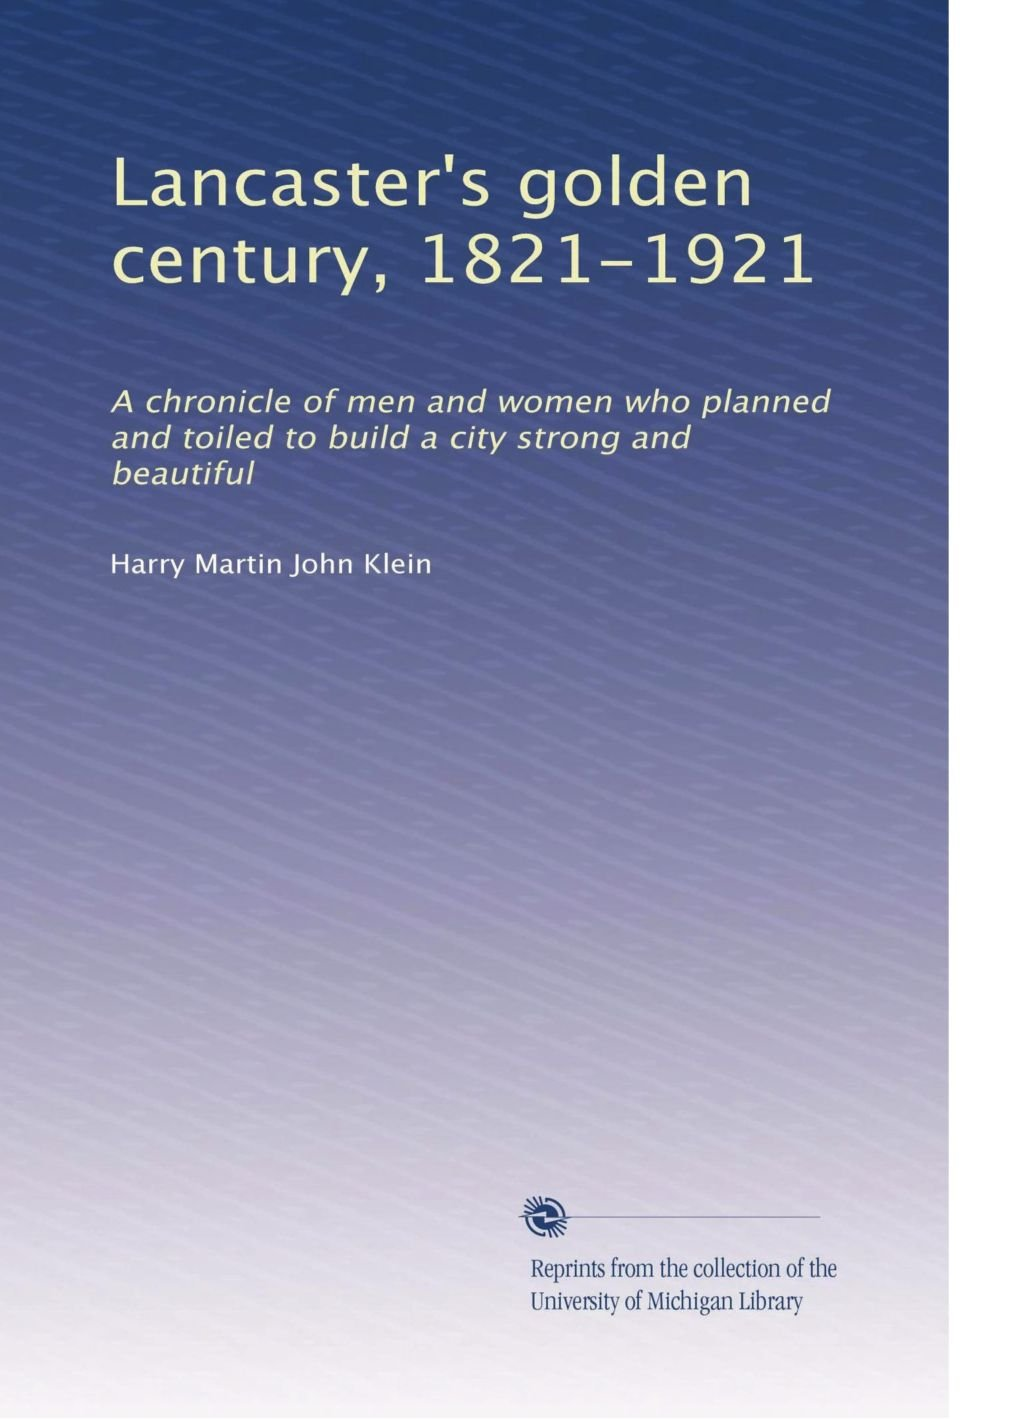 Download Lancaster's golden century, 1821-1921: A chronicle of men and women who planned and toiled to build a city strong and beautiful pdf epub